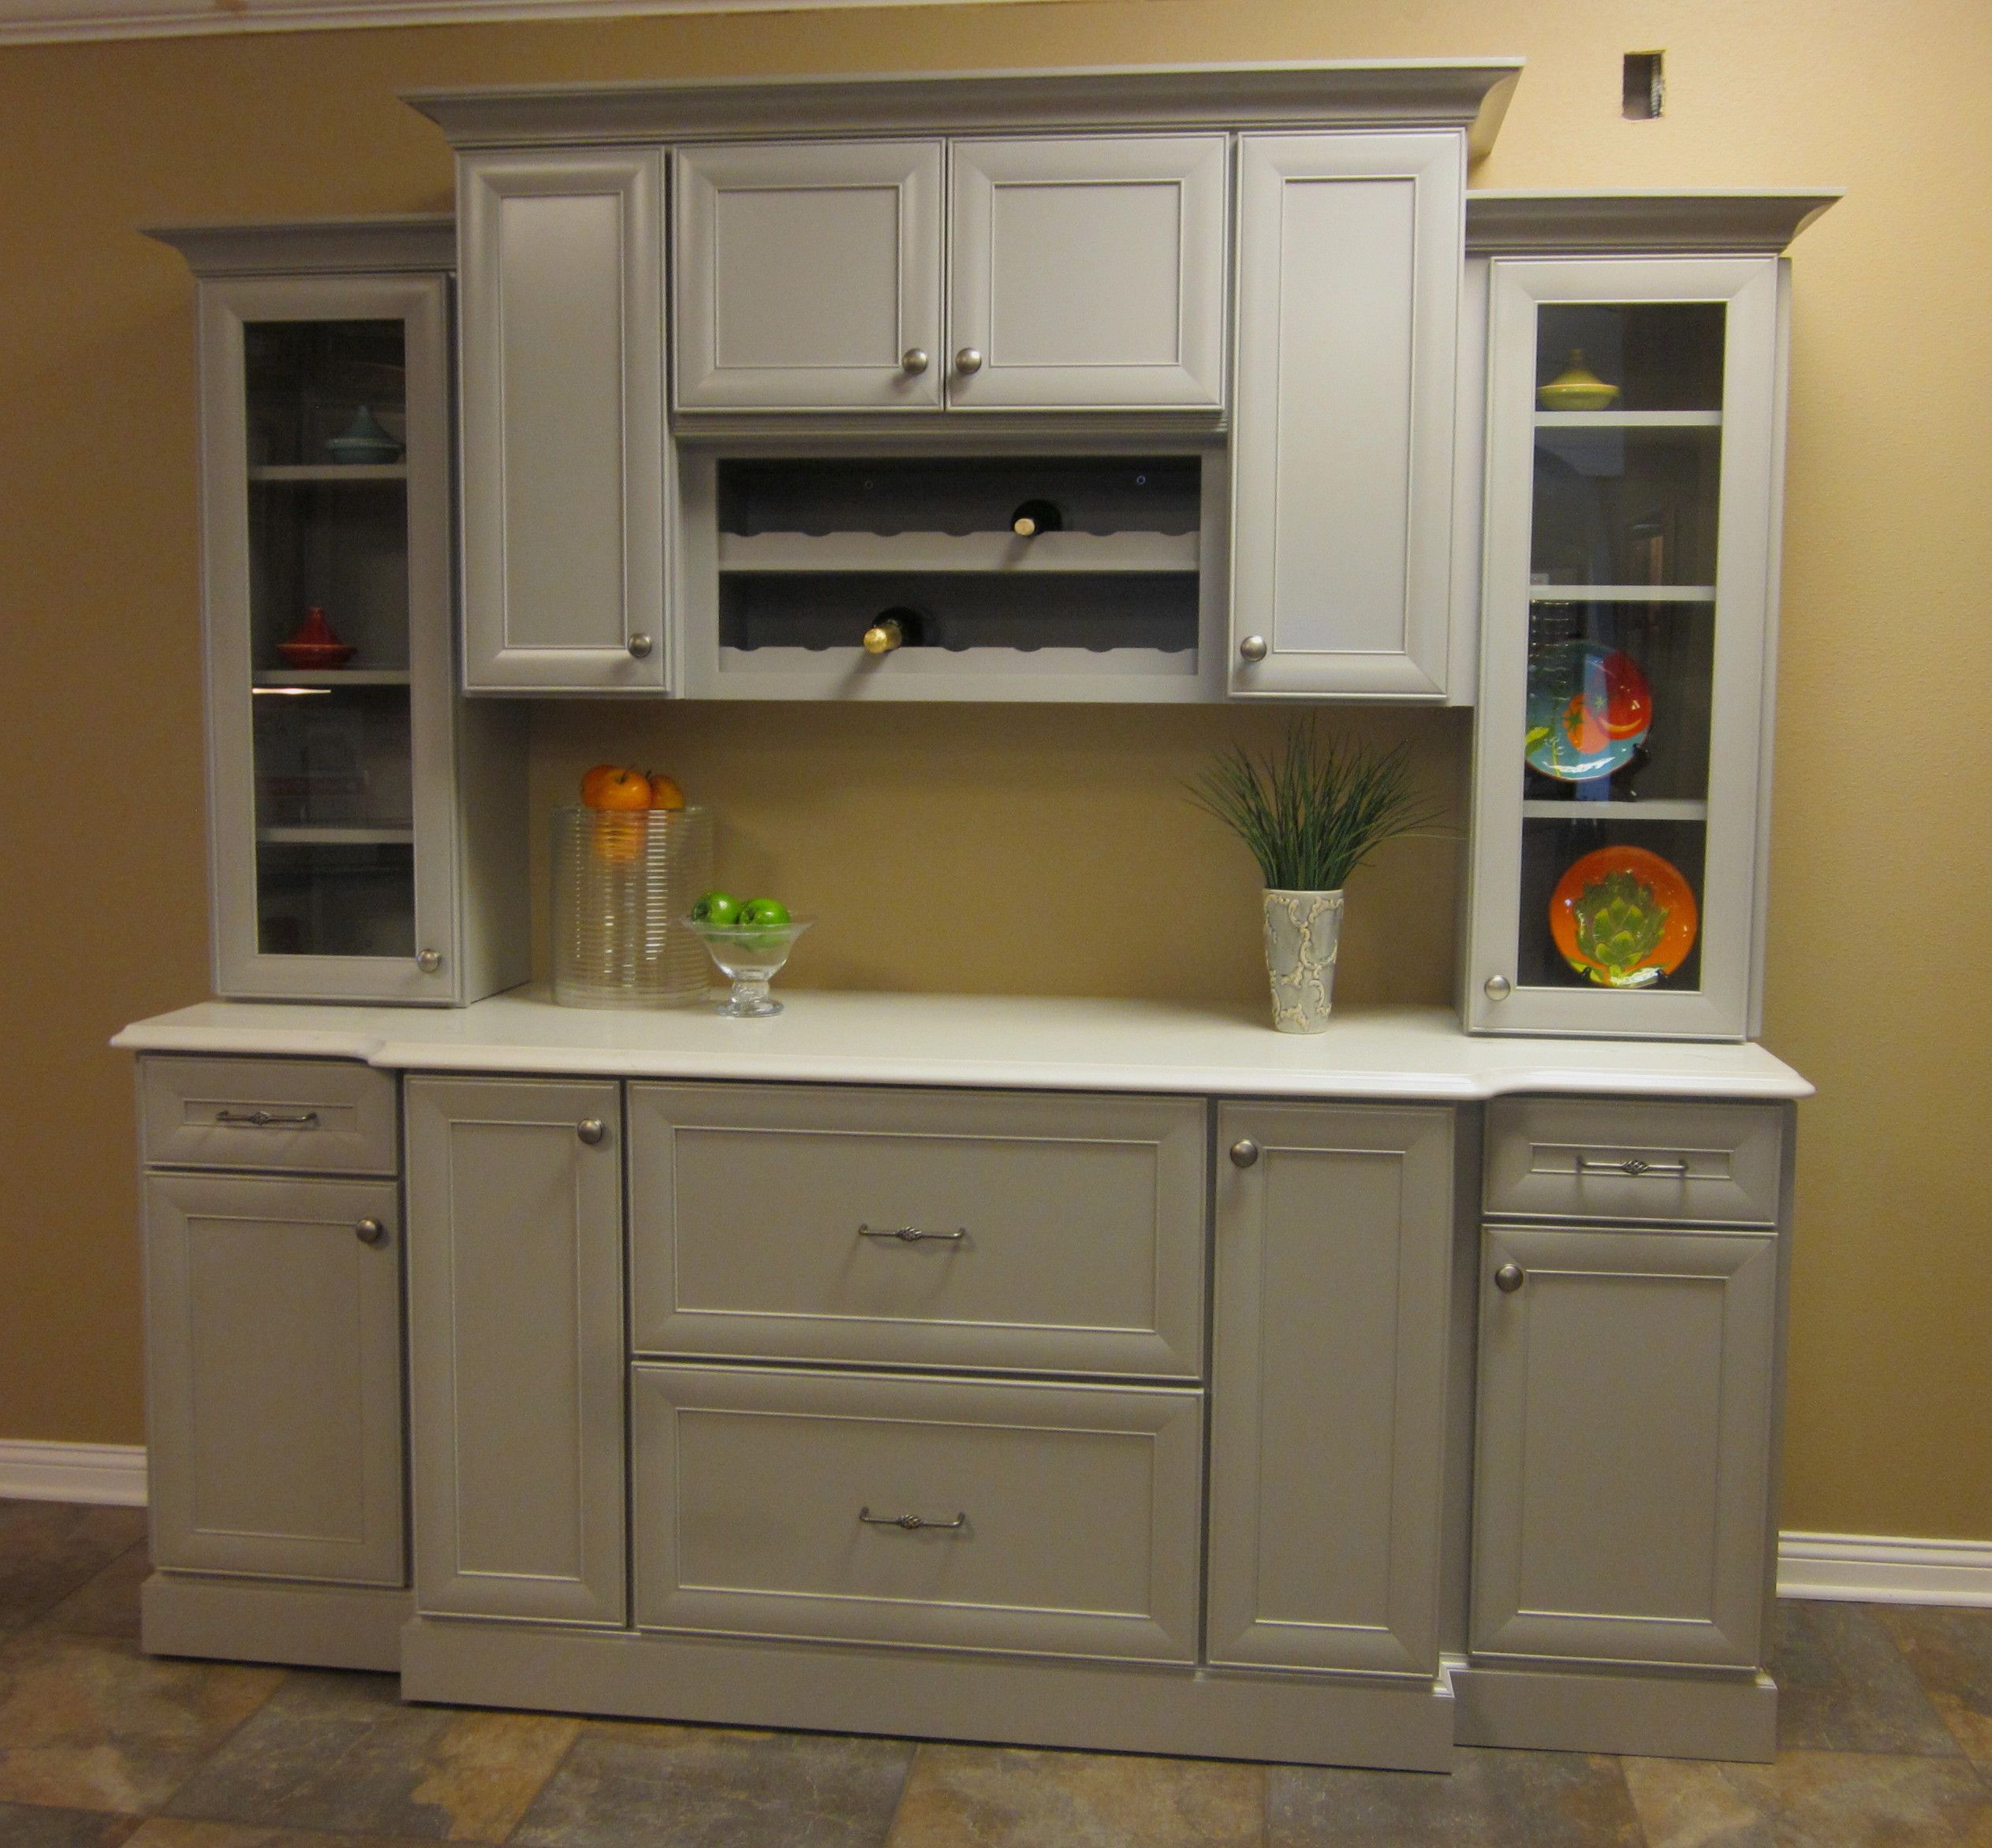 Merrilat Dusk Color Cabinets: The Mew, Mitered Doorstyle Is Bayville, The Cabinetry Line